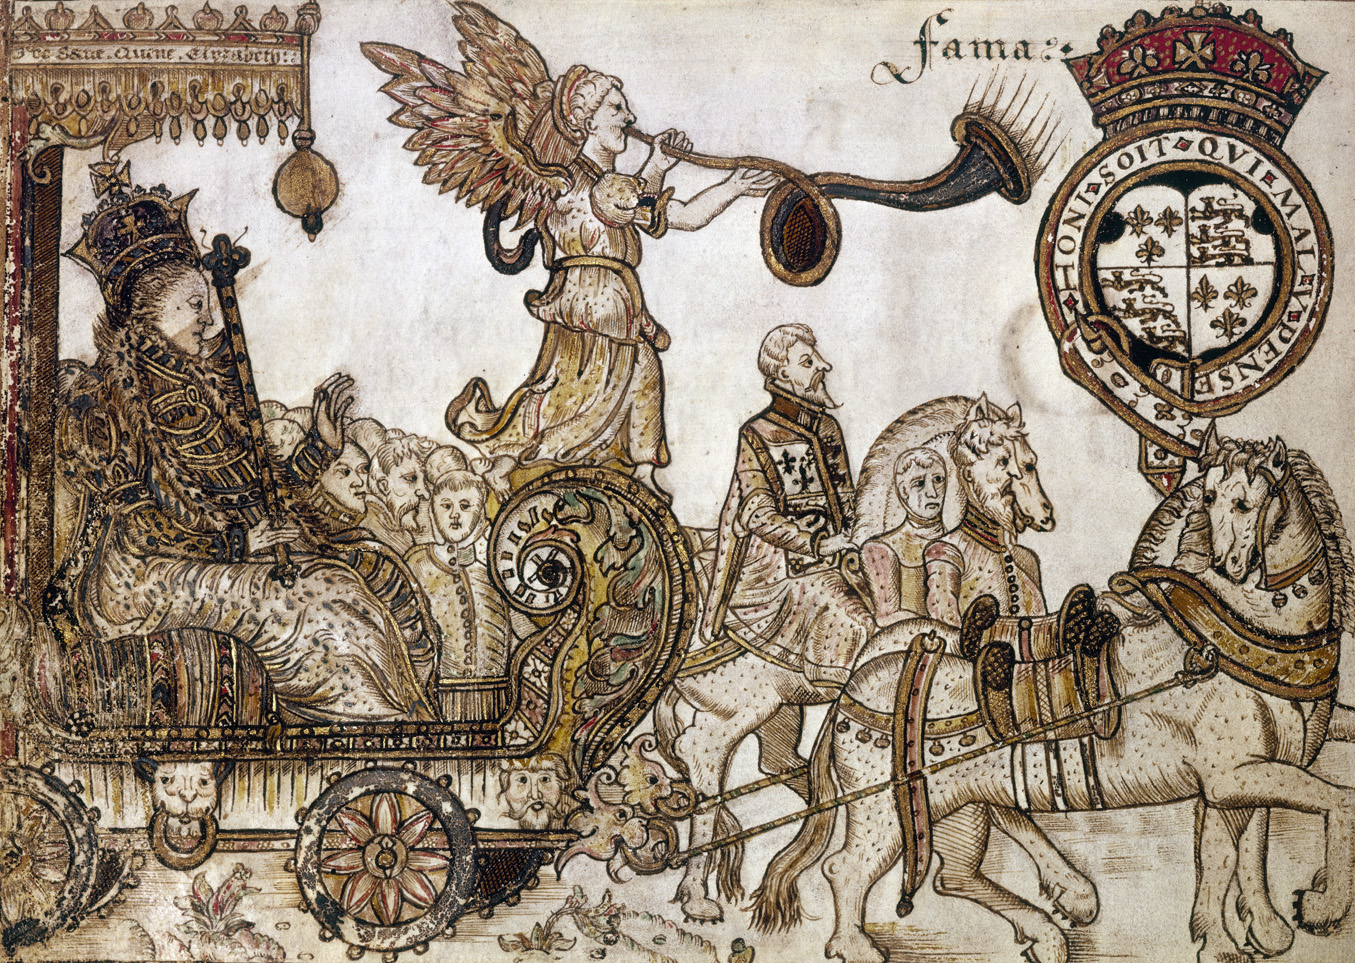 Queen Elizabeth I in procession, her carriage displaying a statue of Fama, from a manuscript dedicated to the queen, by William Teshe, c. 1584.